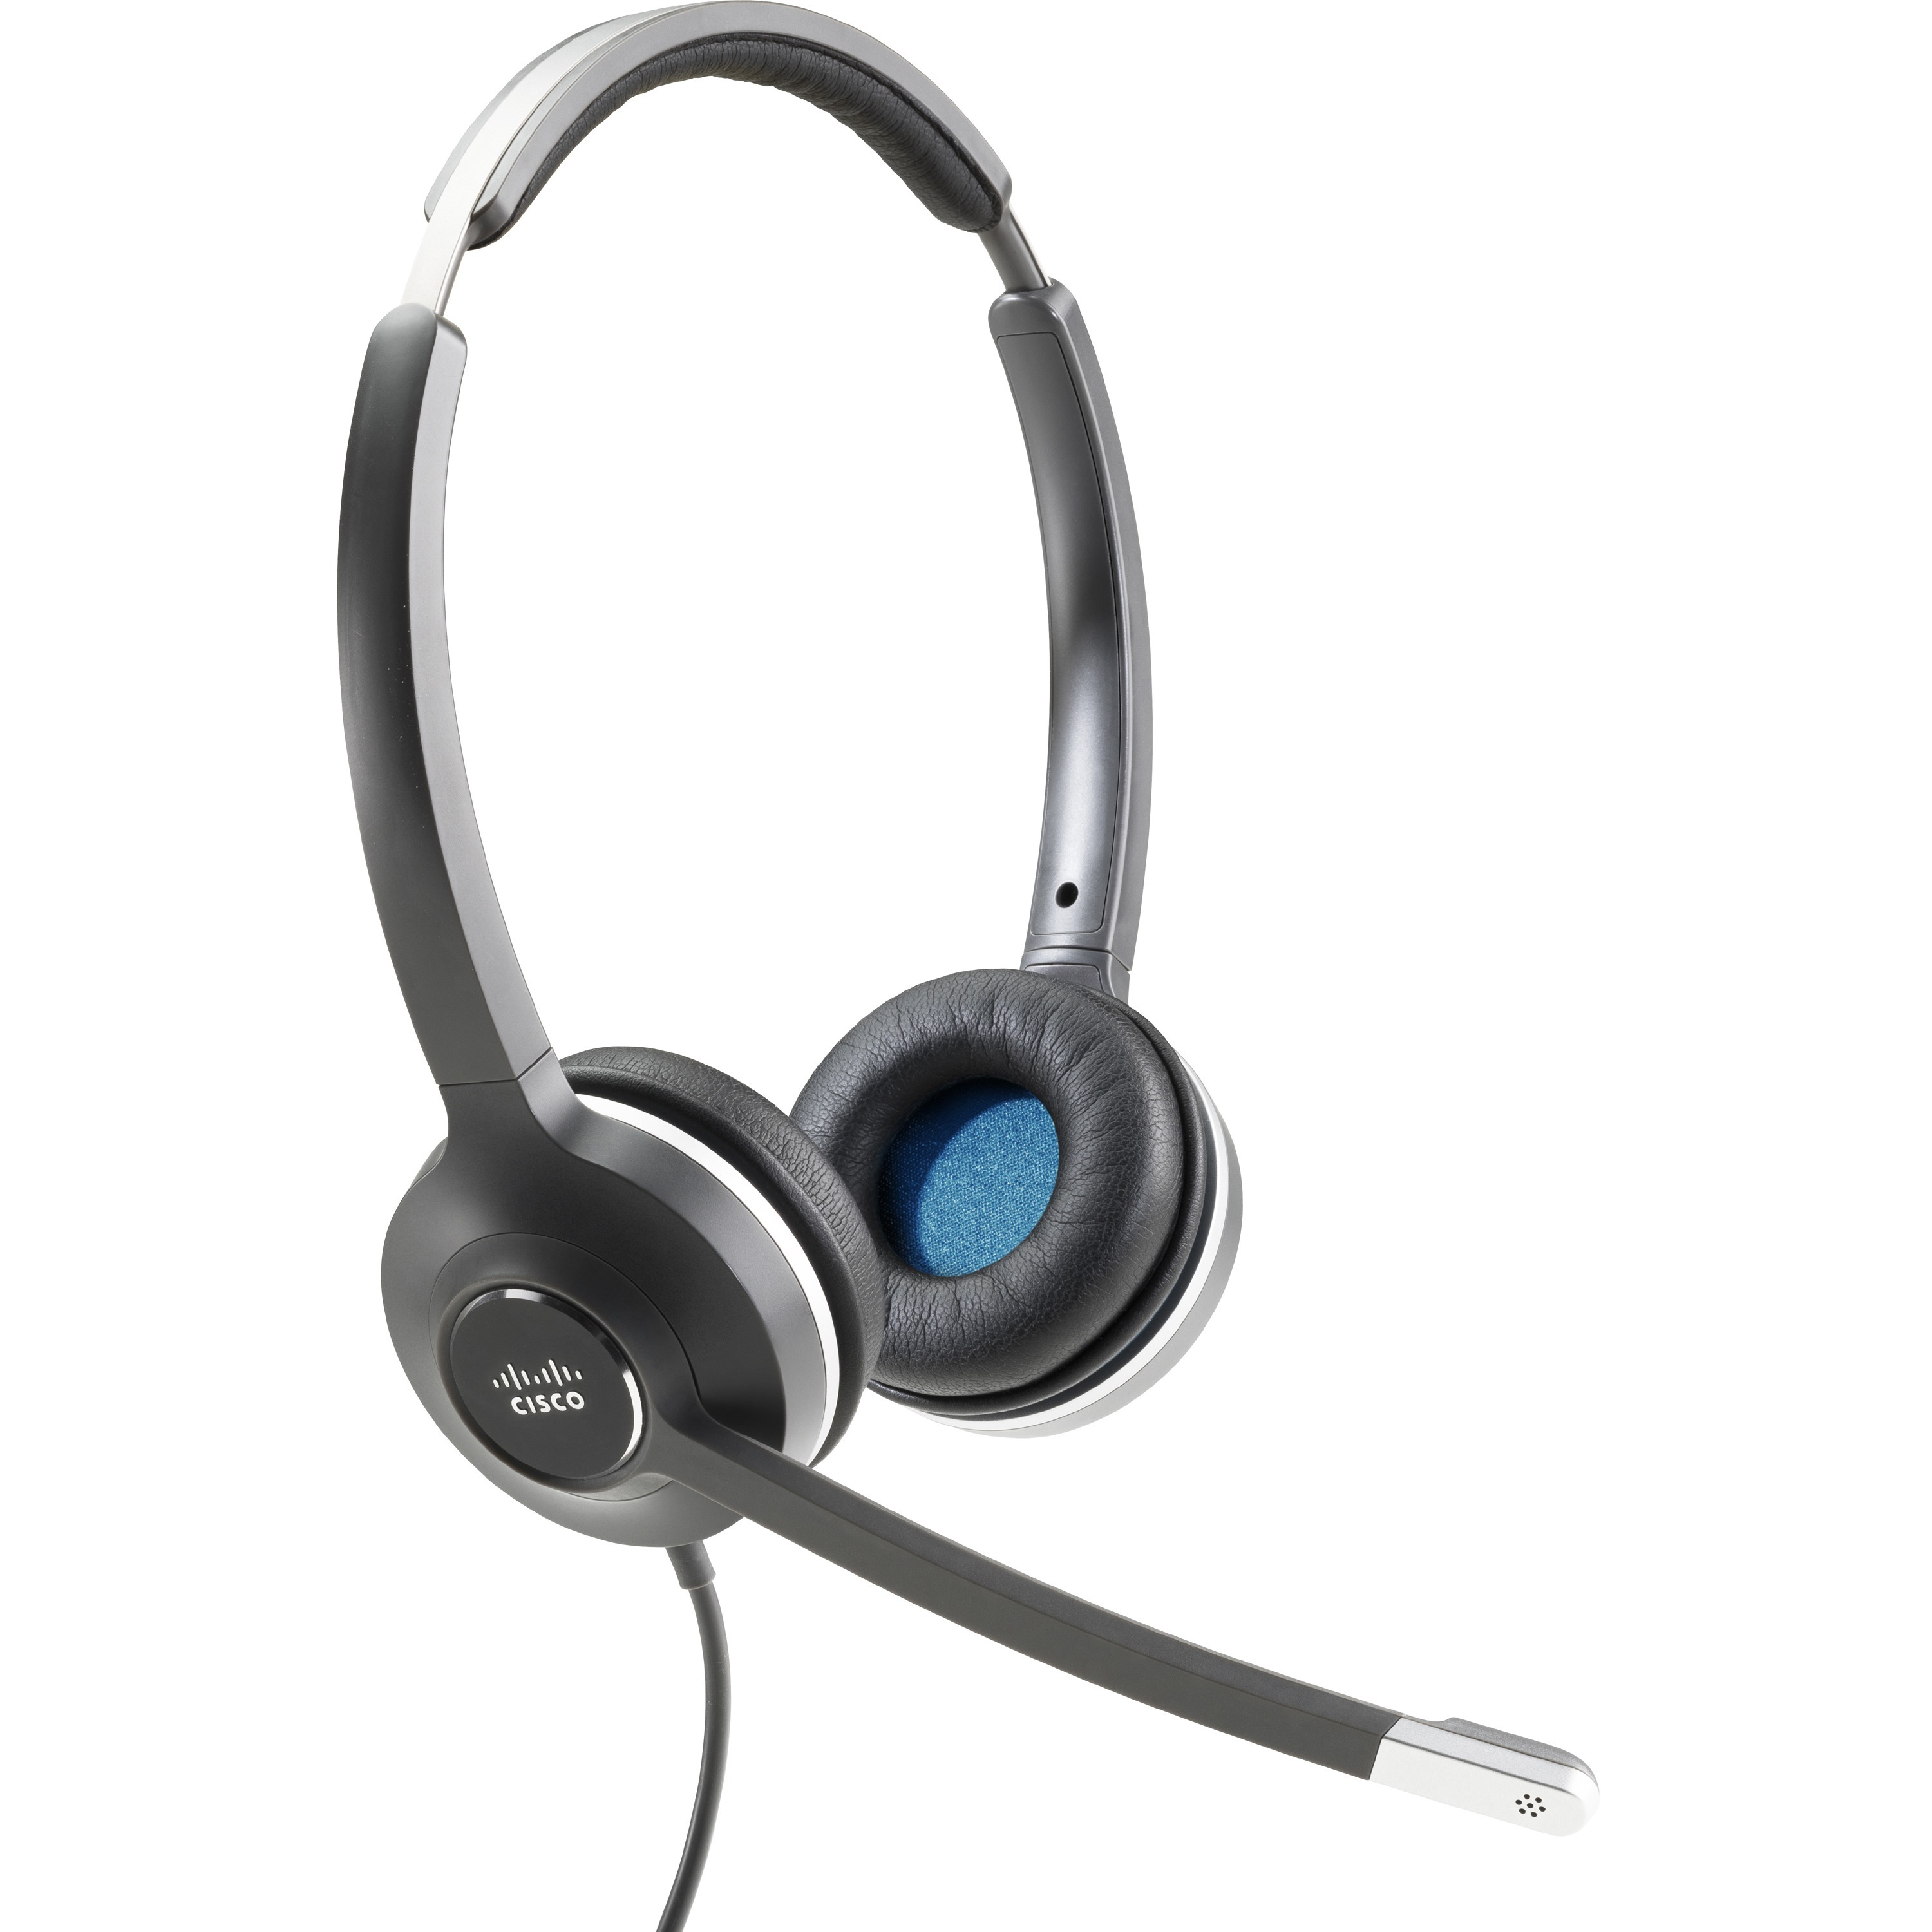 Cisco Headset 532 (Wired Dual with USB Headset Adapter)_subImage_1